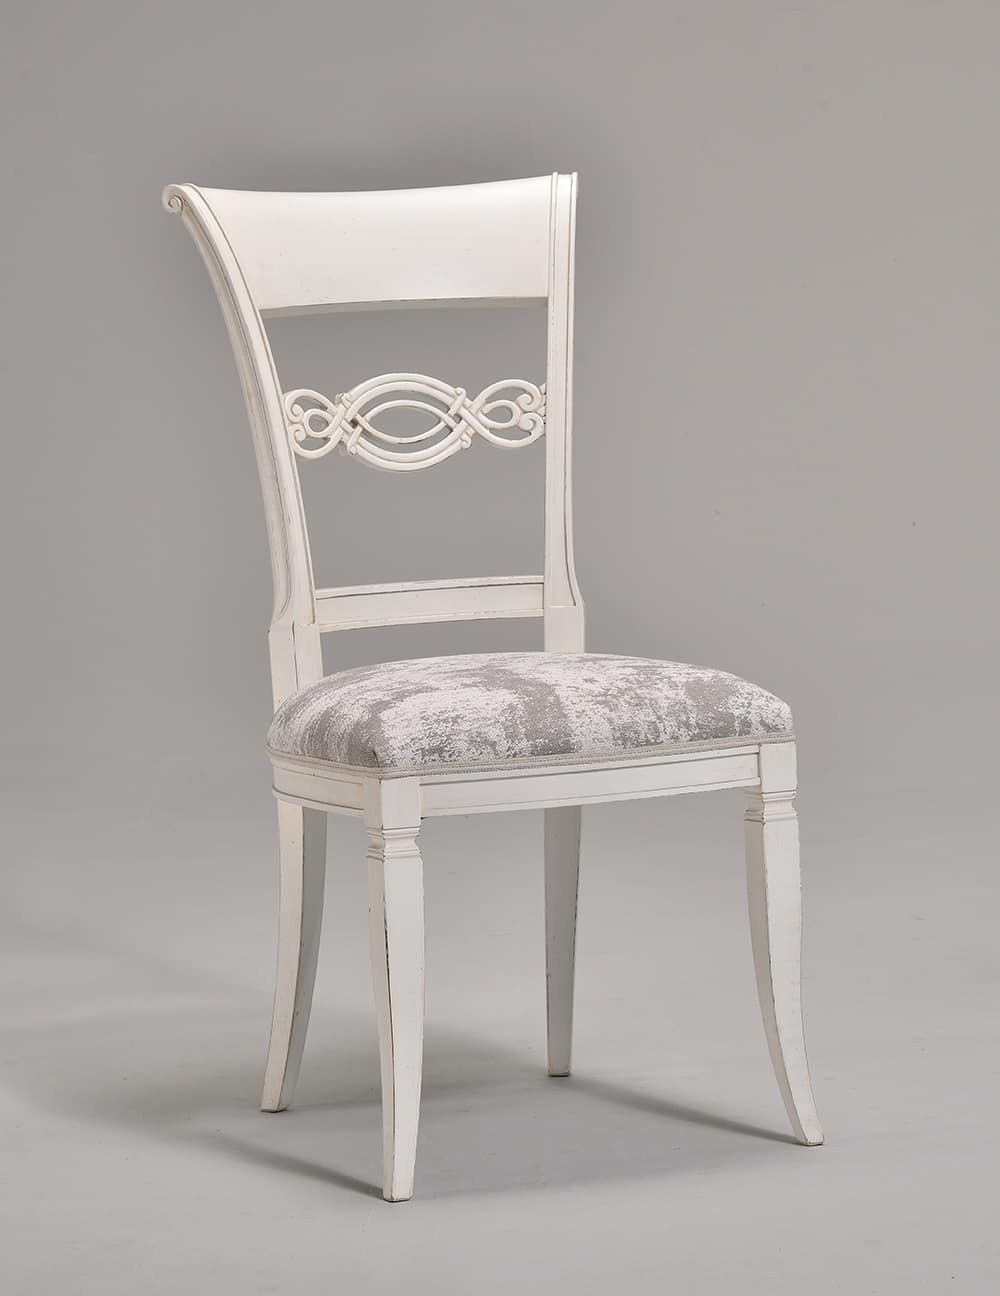 CHIMERA chair 8524S, Classic style chair with carved wooden backrest